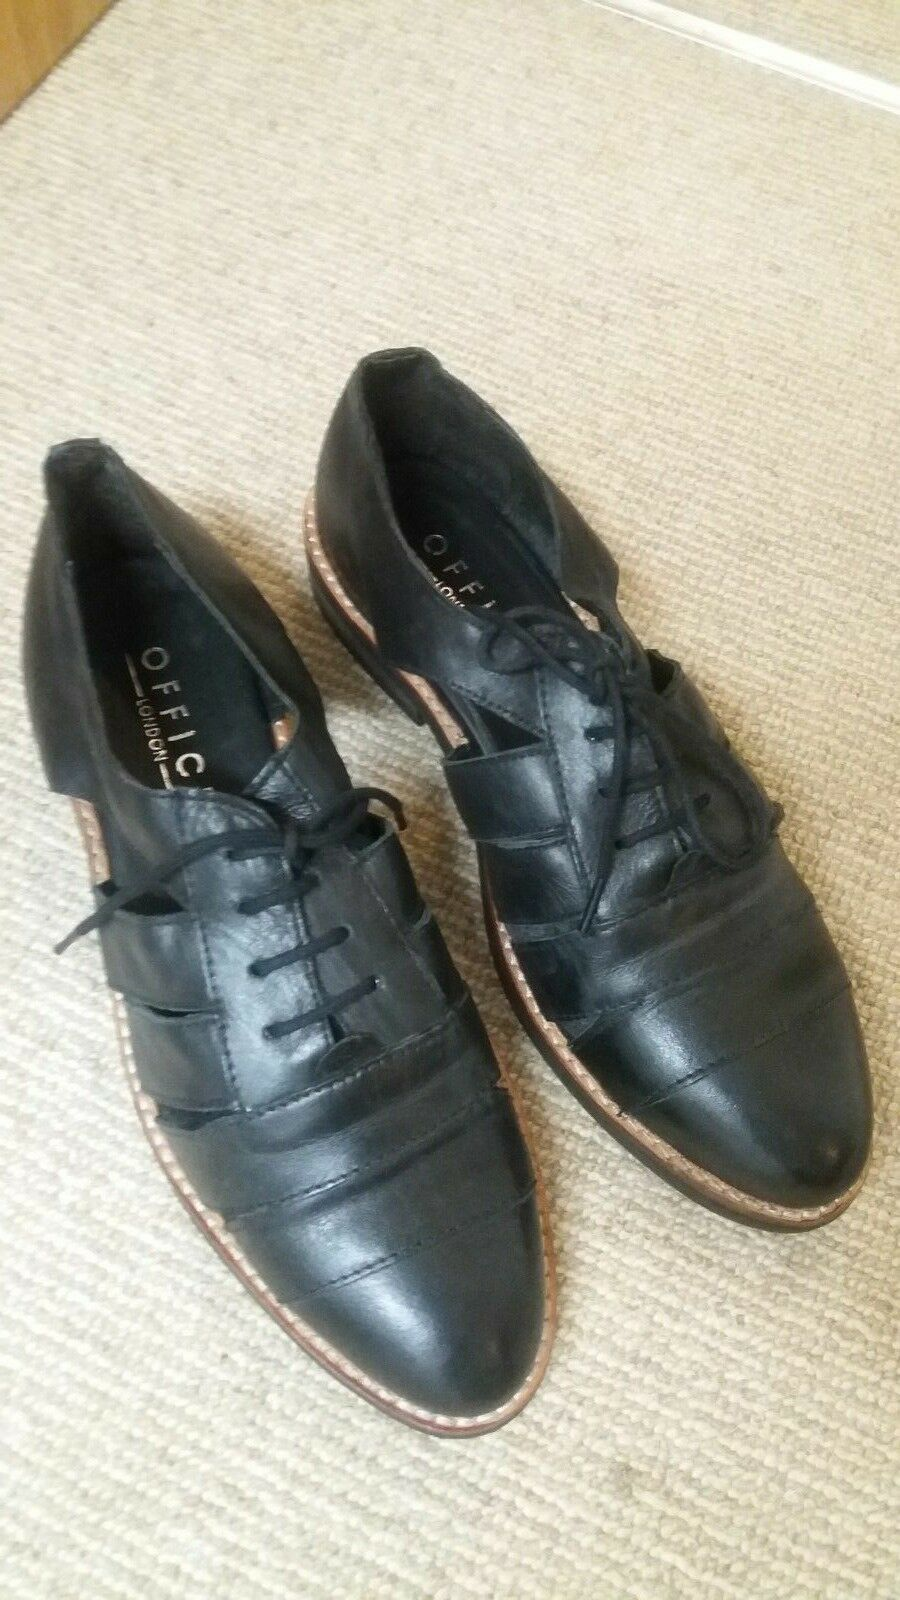 OFFICE BLACK LEATHER CLEATED SOLE LACE UP Schuhe SIZE UK 7 EUR 40